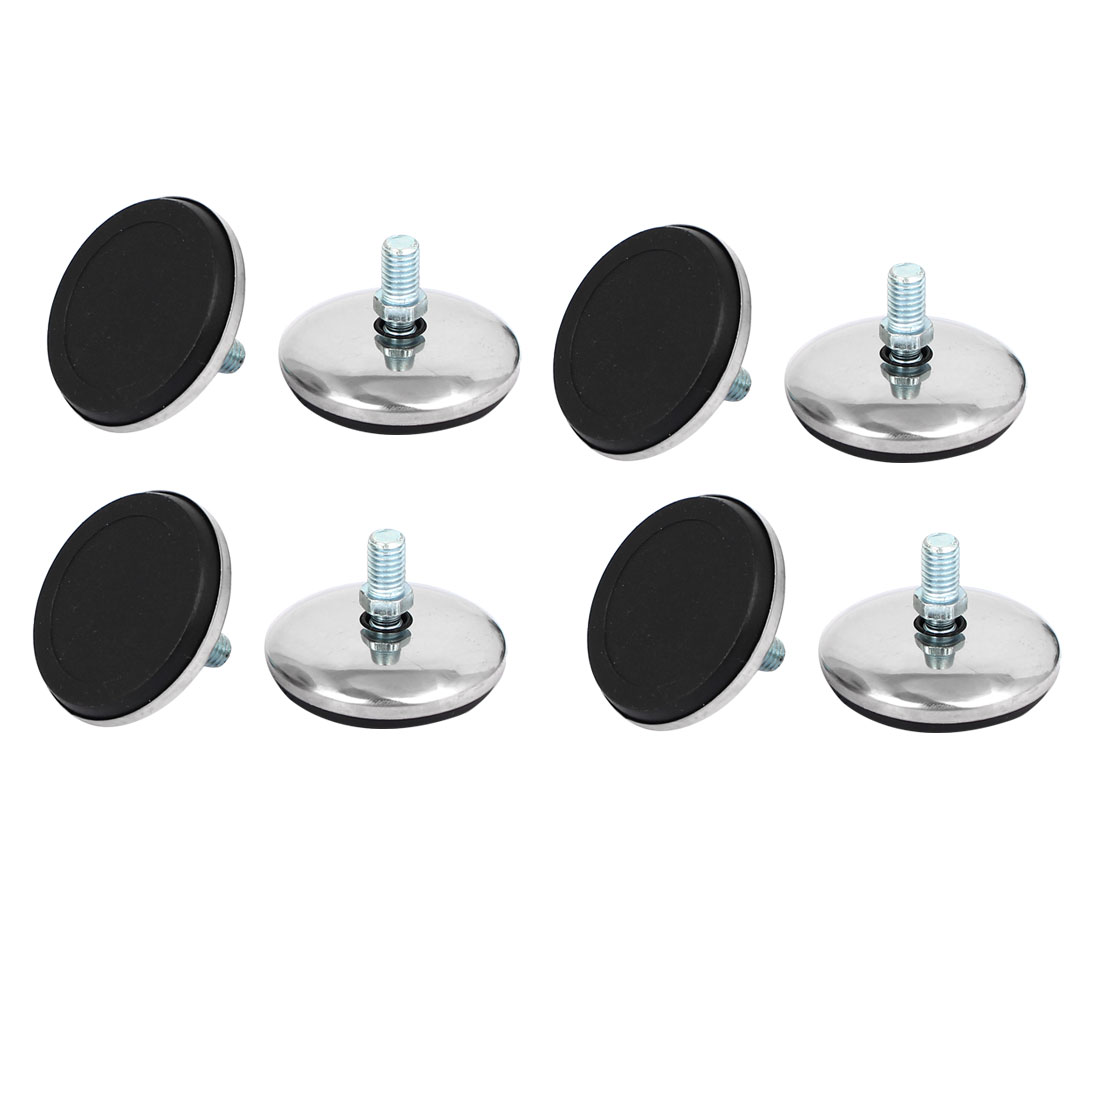 50mm Dia Plastic Base Thread Stem Adjustable Leveling Foot Furniture Glide 8pcs